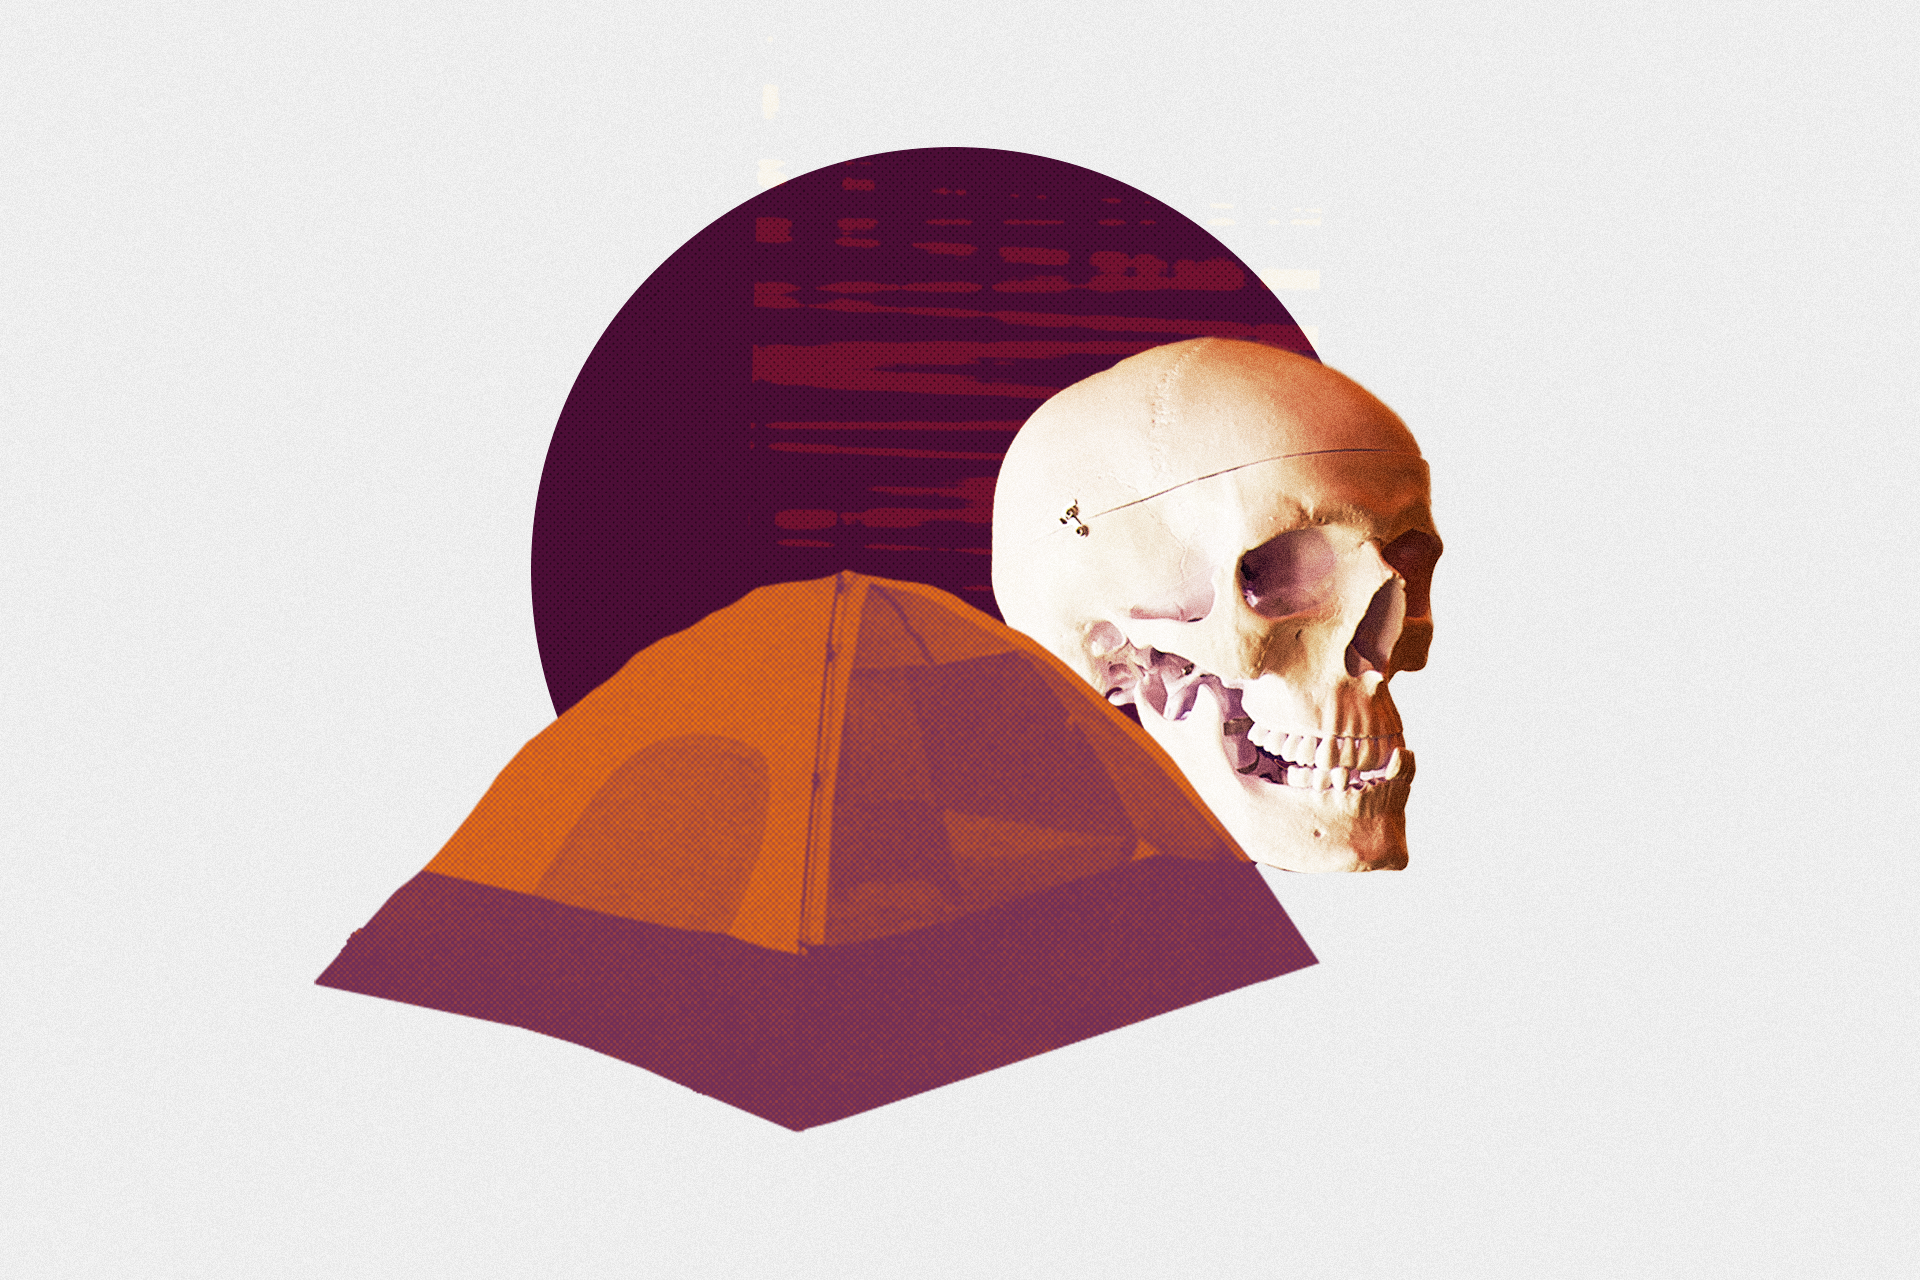 Collage of a tent and skull, illustration by Regine Salumbre